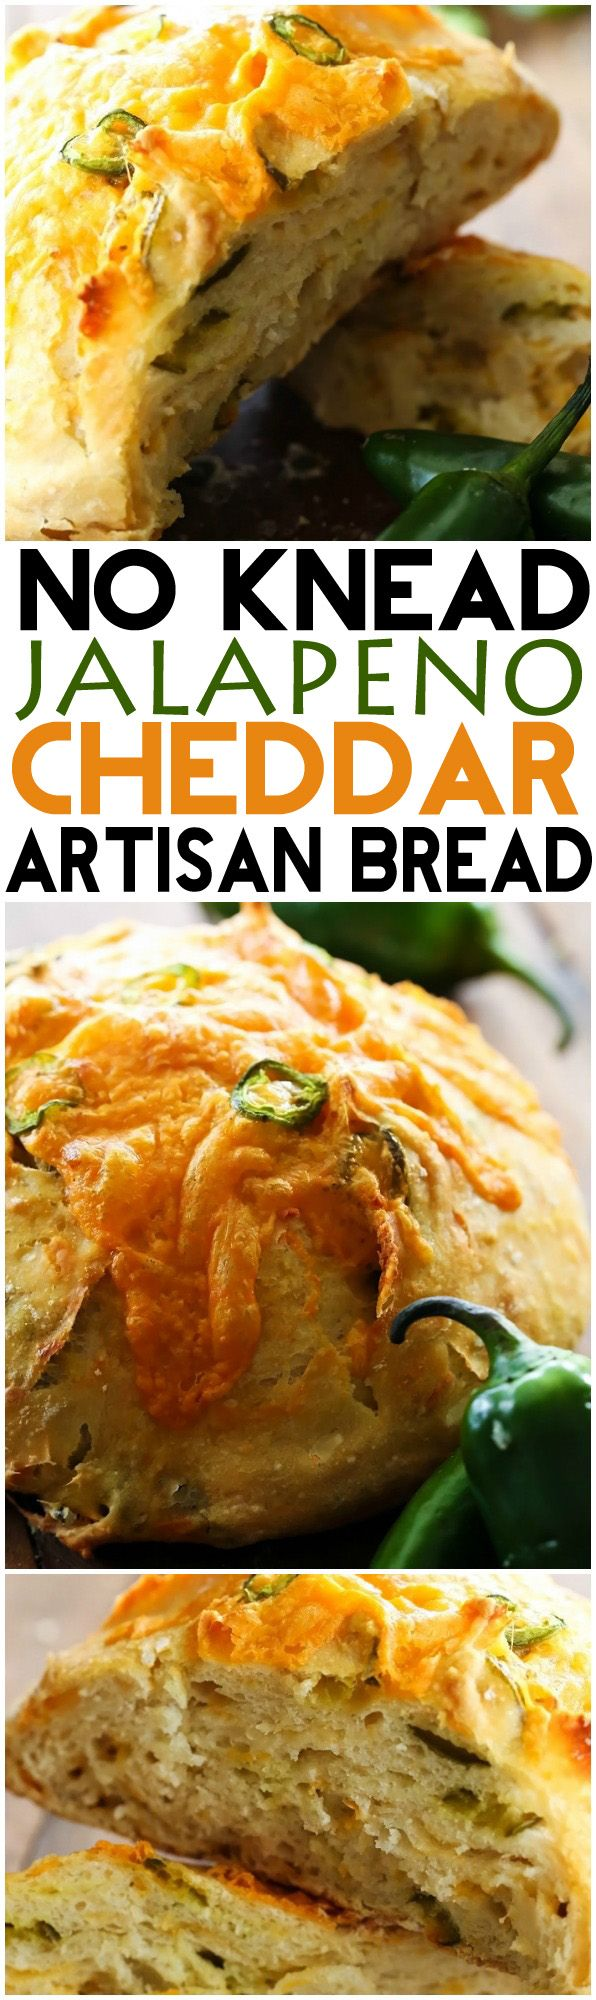 No Knead Jalapeo Cheddar Artisan Bread Recipe All About Food Johnsonamp039s Milk Powder 300gr This Is Fool Proof It Has A Crunchy Crisp Crust With Soft Center And Delicious Kick To